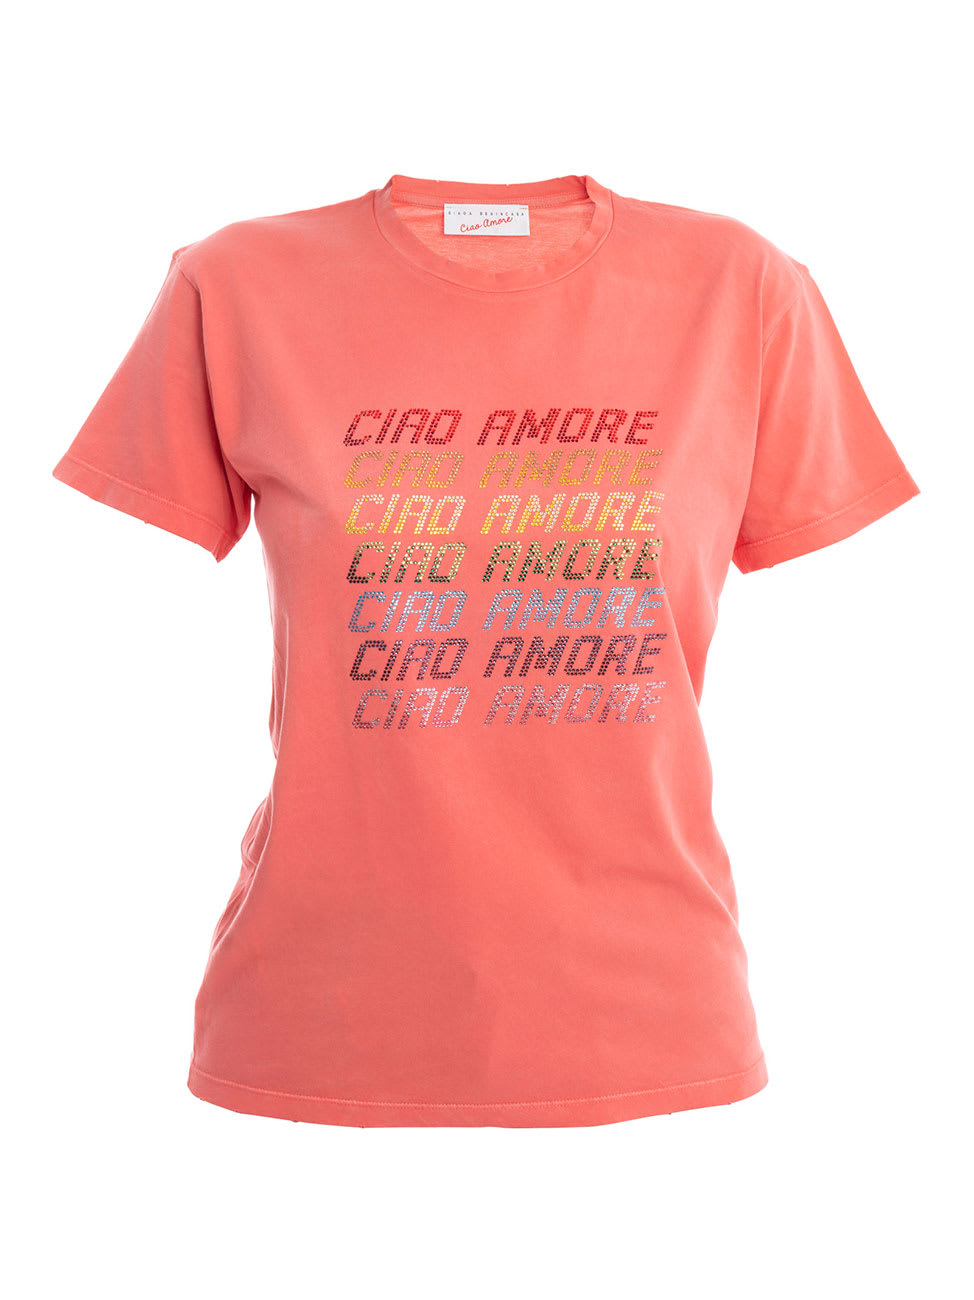 Ciao Amore T-shirt